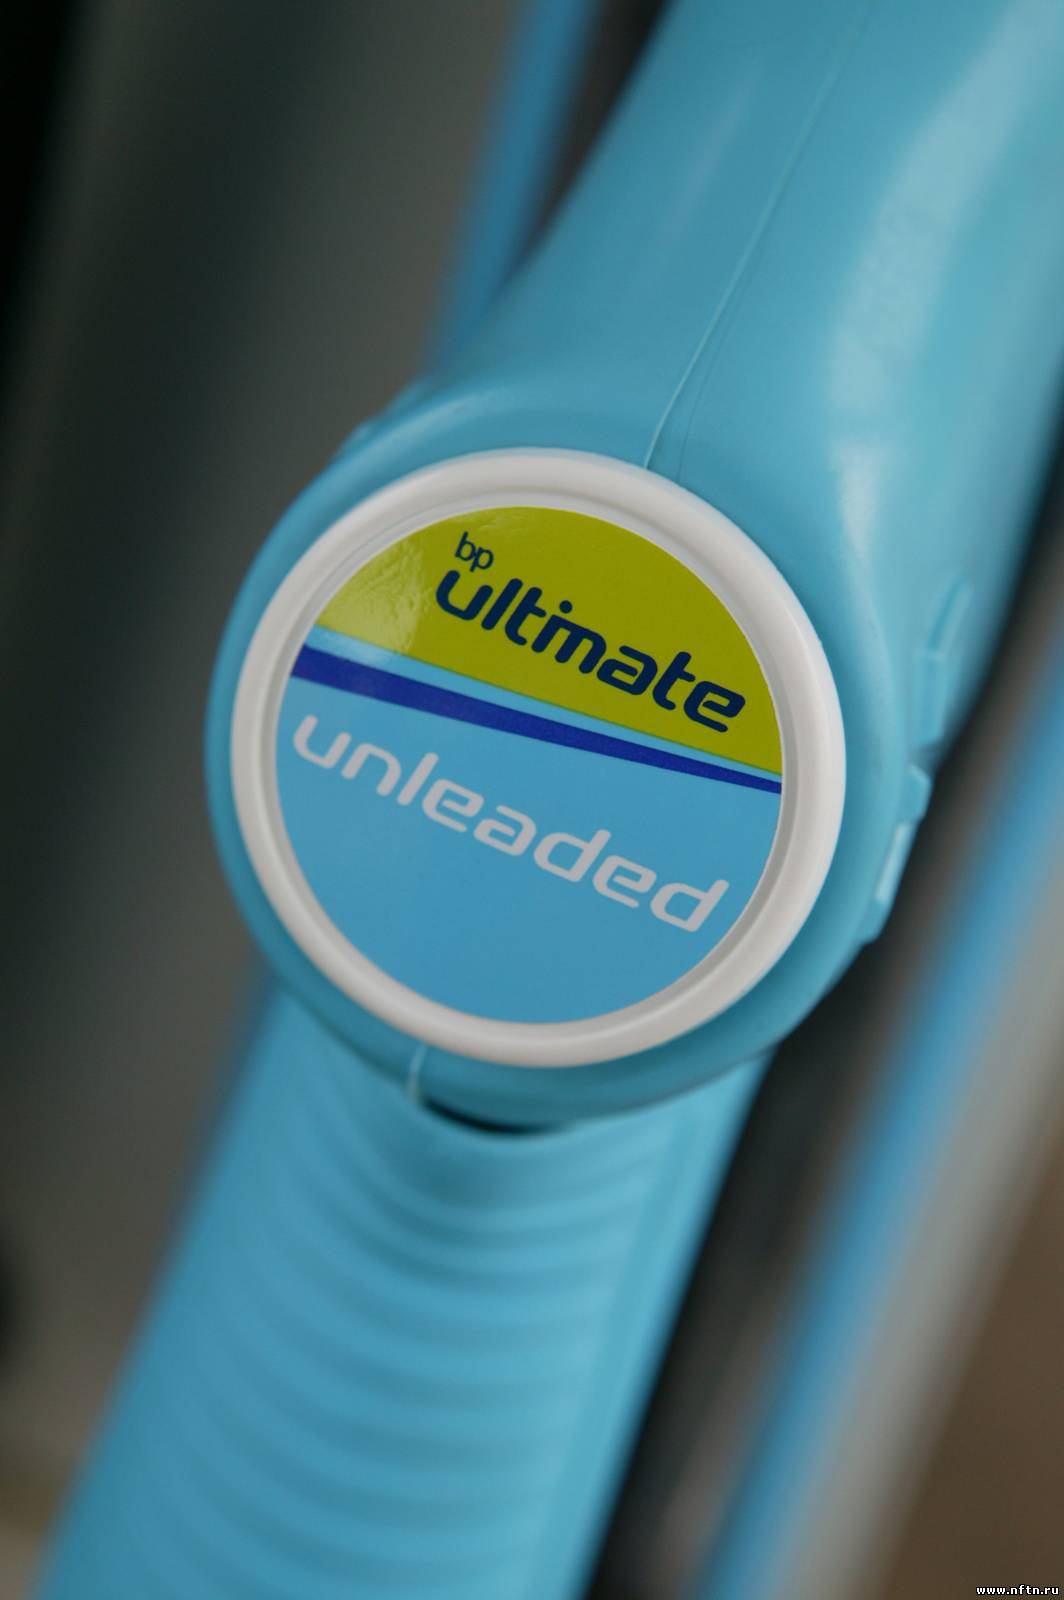 mr_bp_ultimate_pump_nozzle_2196x3300